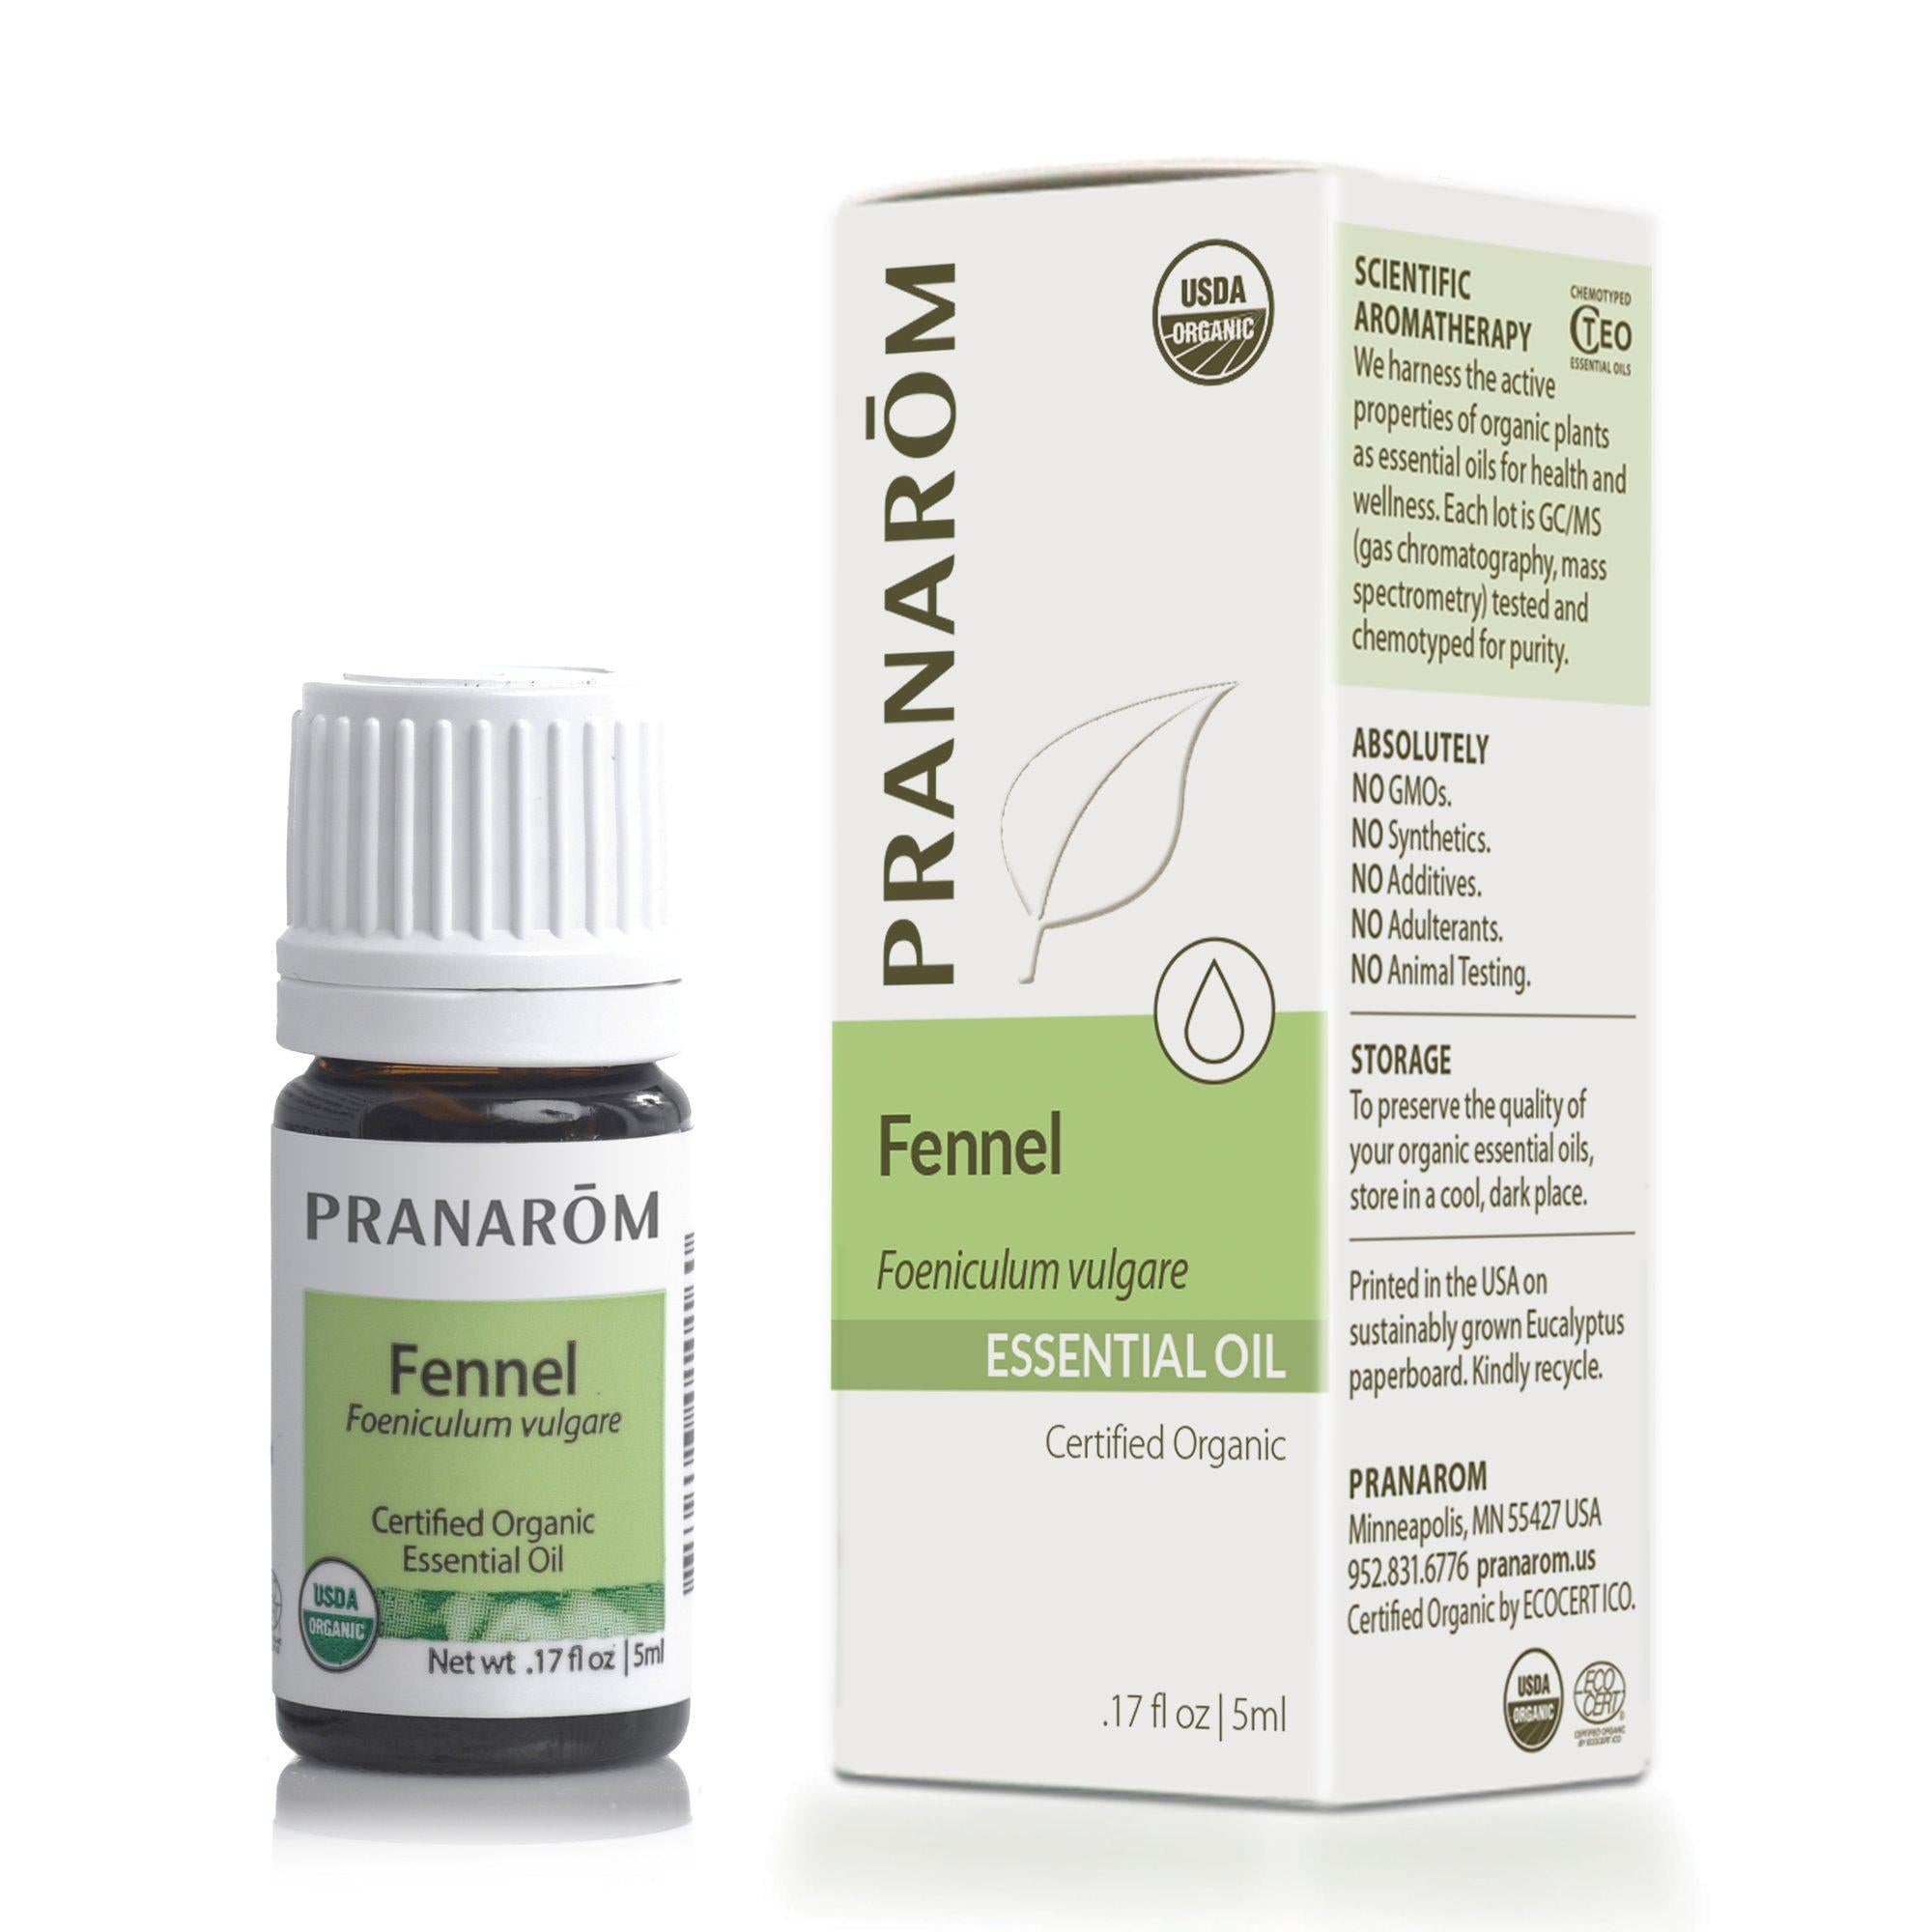 Fennel 5ml